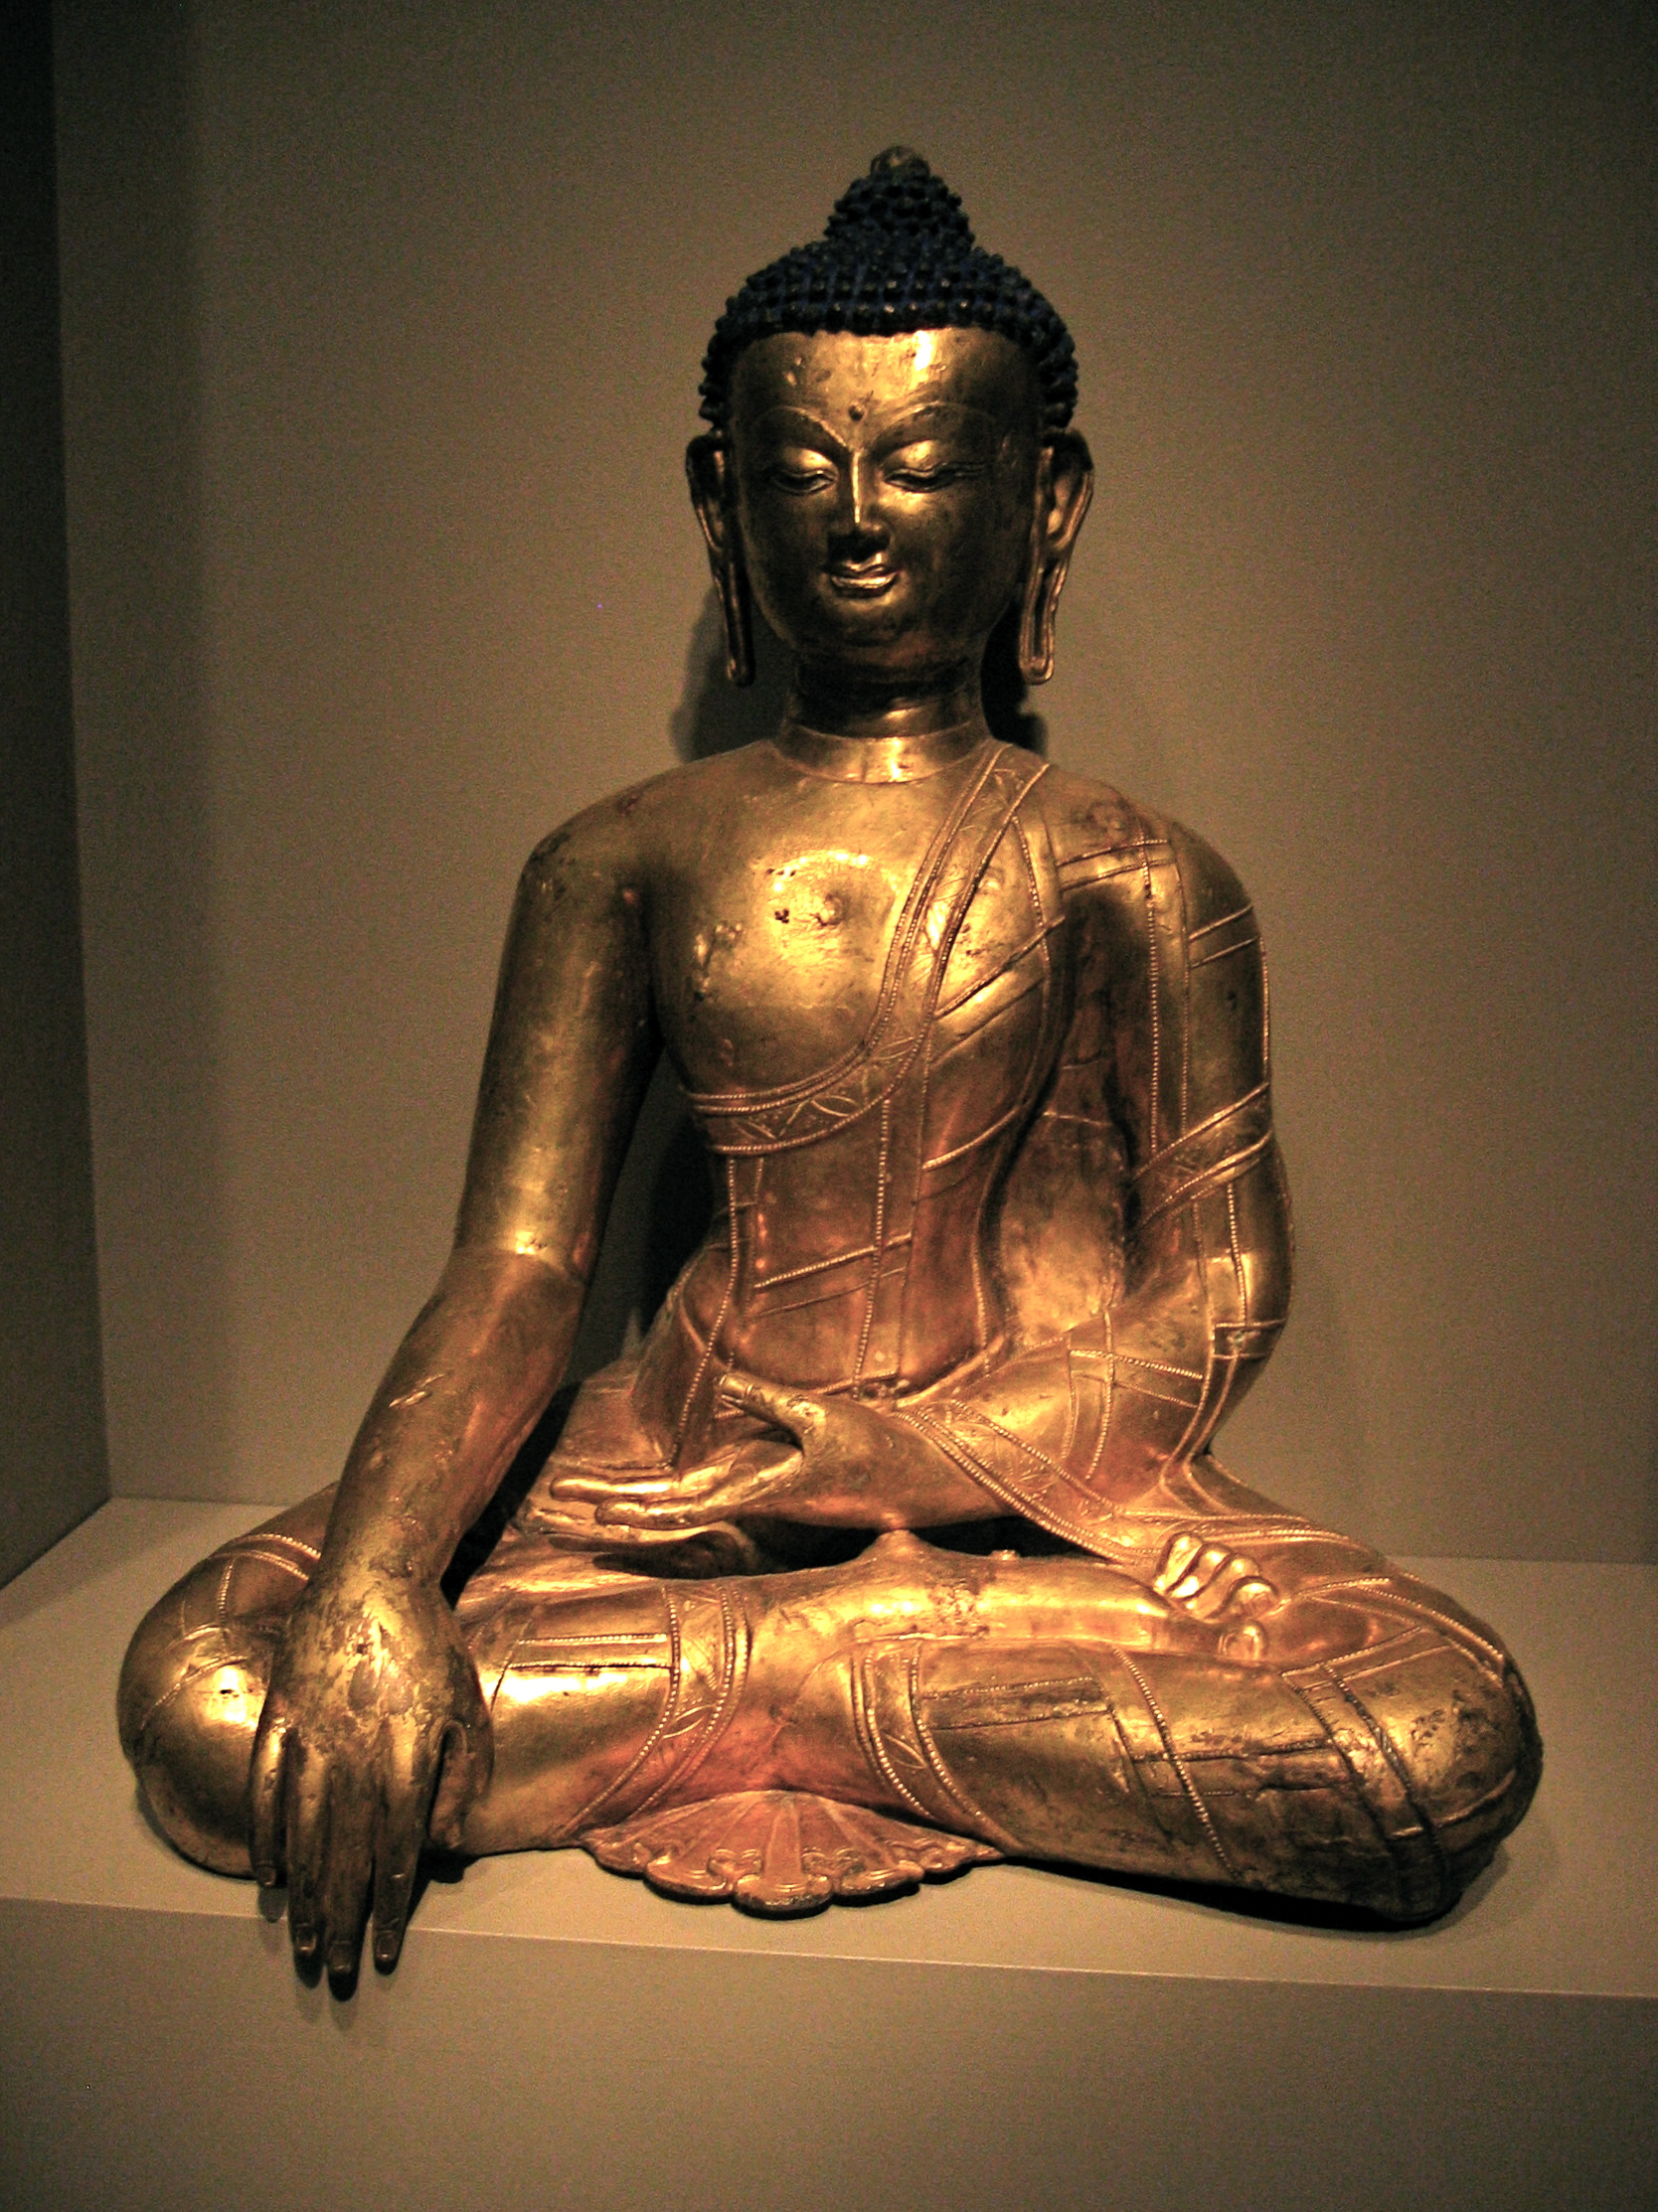 http://upload.wikimedia.org/wikipedia/commons/5/57/Tibetan_copper_statue_of_Gautama_Buddha_(14th_century).jpg